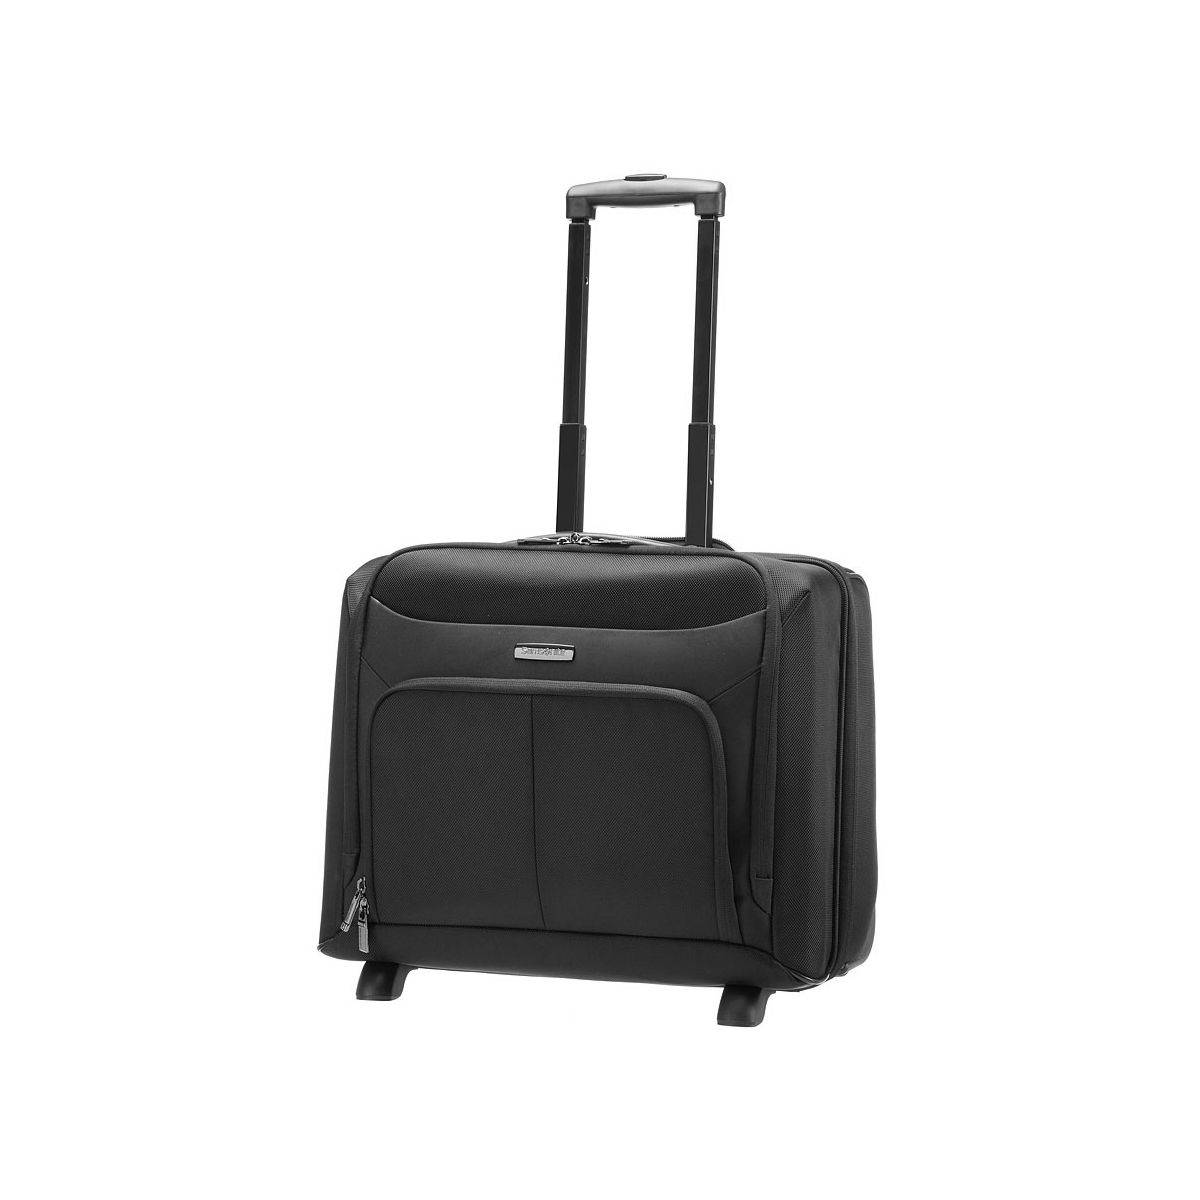 pilot case samsonite pilot case ergo biz fermeture zipp e 53210. Black Bedroom Furniture Sets. Home Design Ideas